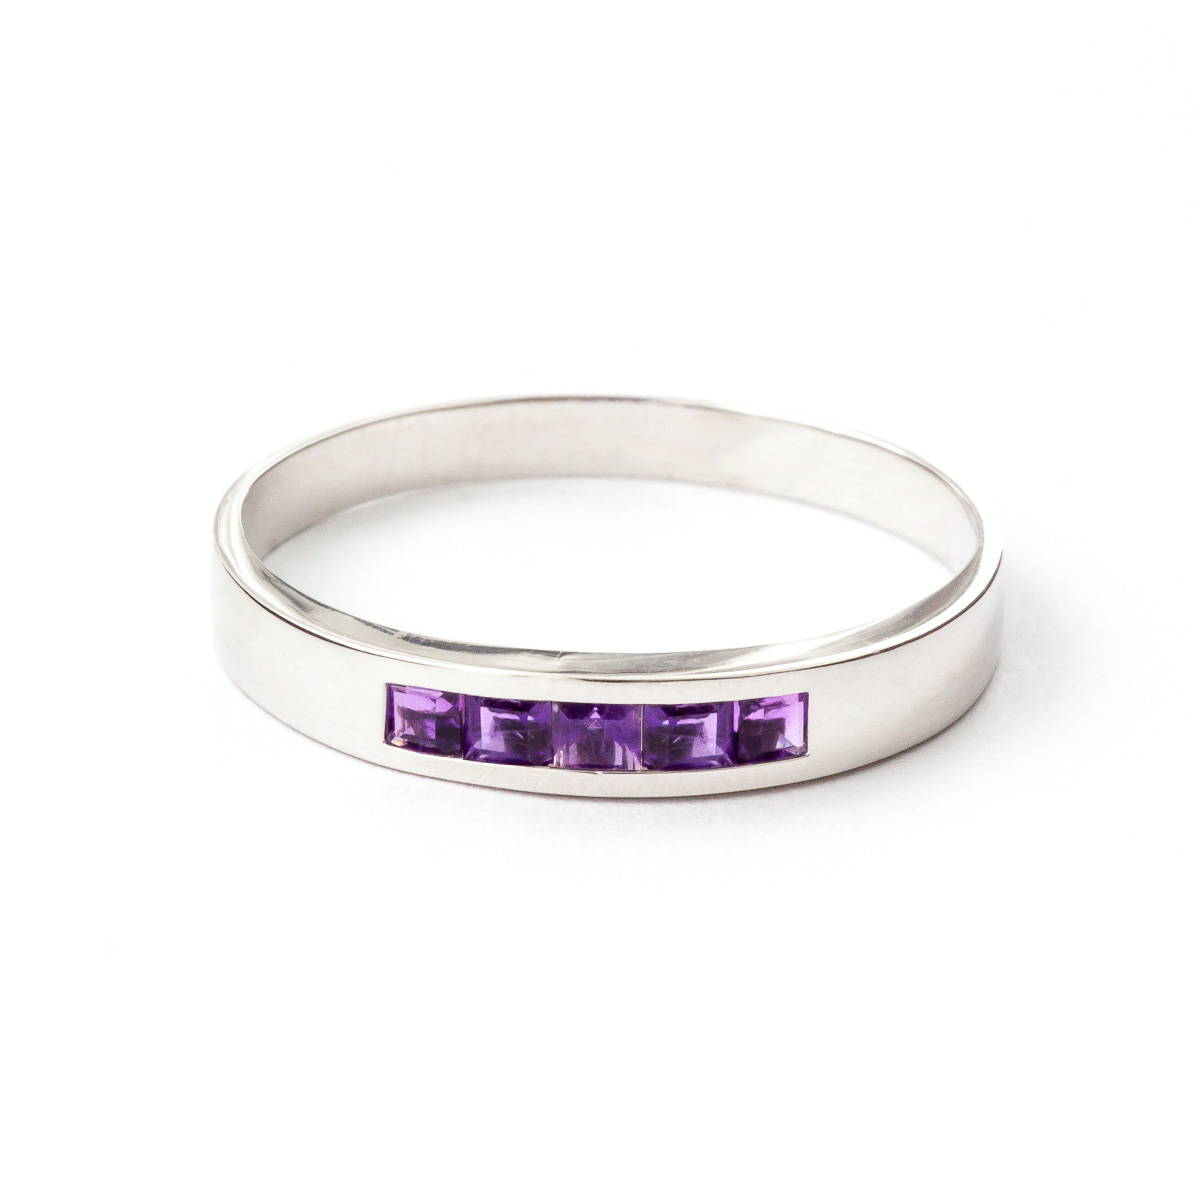 Amethyst Princess Prestige Ring 0.6 ctw in 9ct White Gold